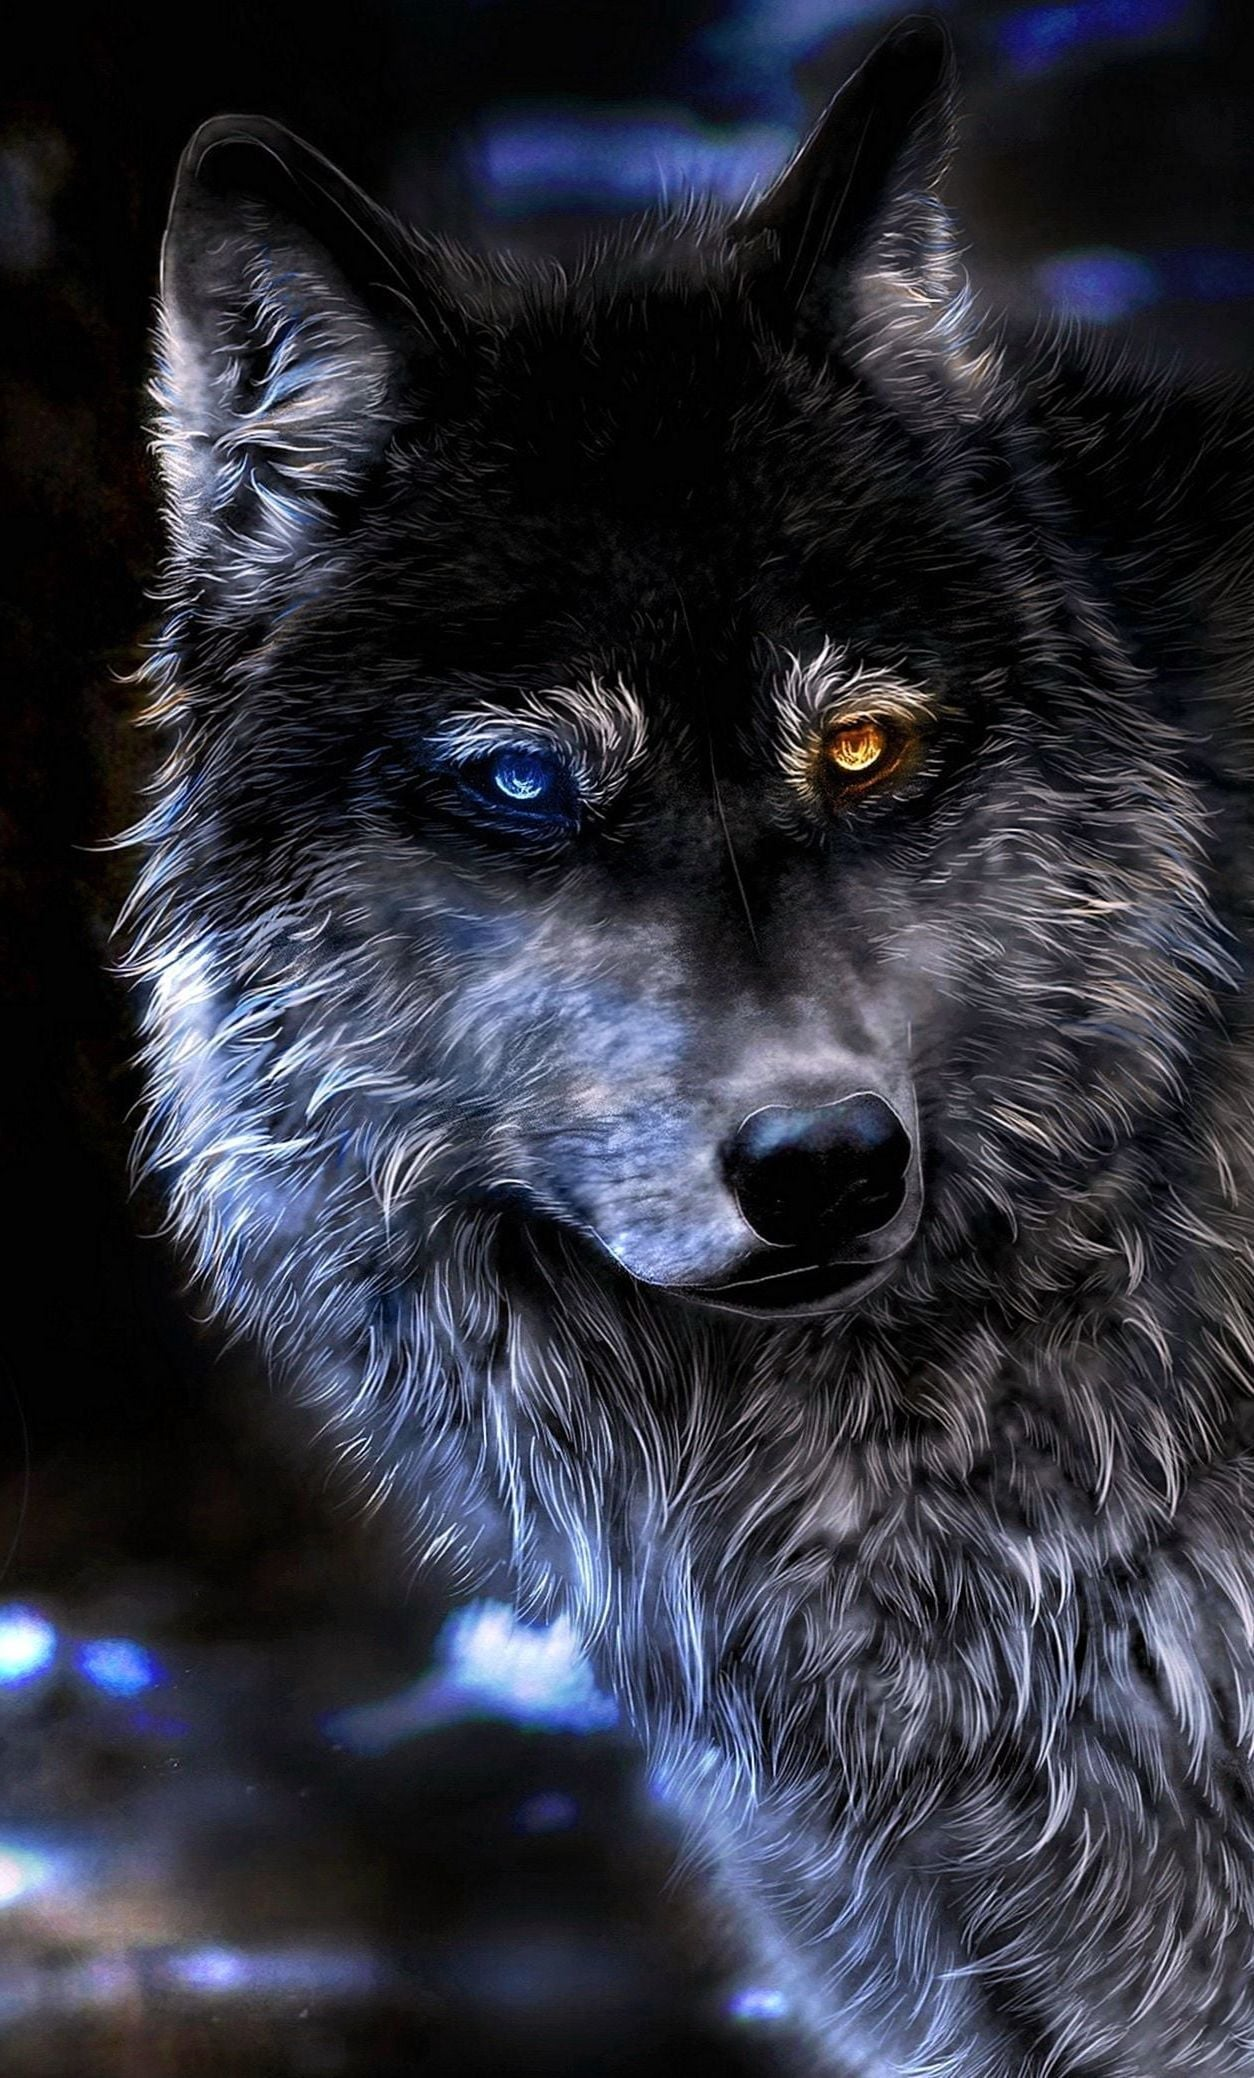 Wolf Iphone 6 Wallpapers Hd Iphone Xs Hd Wallpaper 4k 1254x2078 Download Hd Wallpaper Wallpapertip